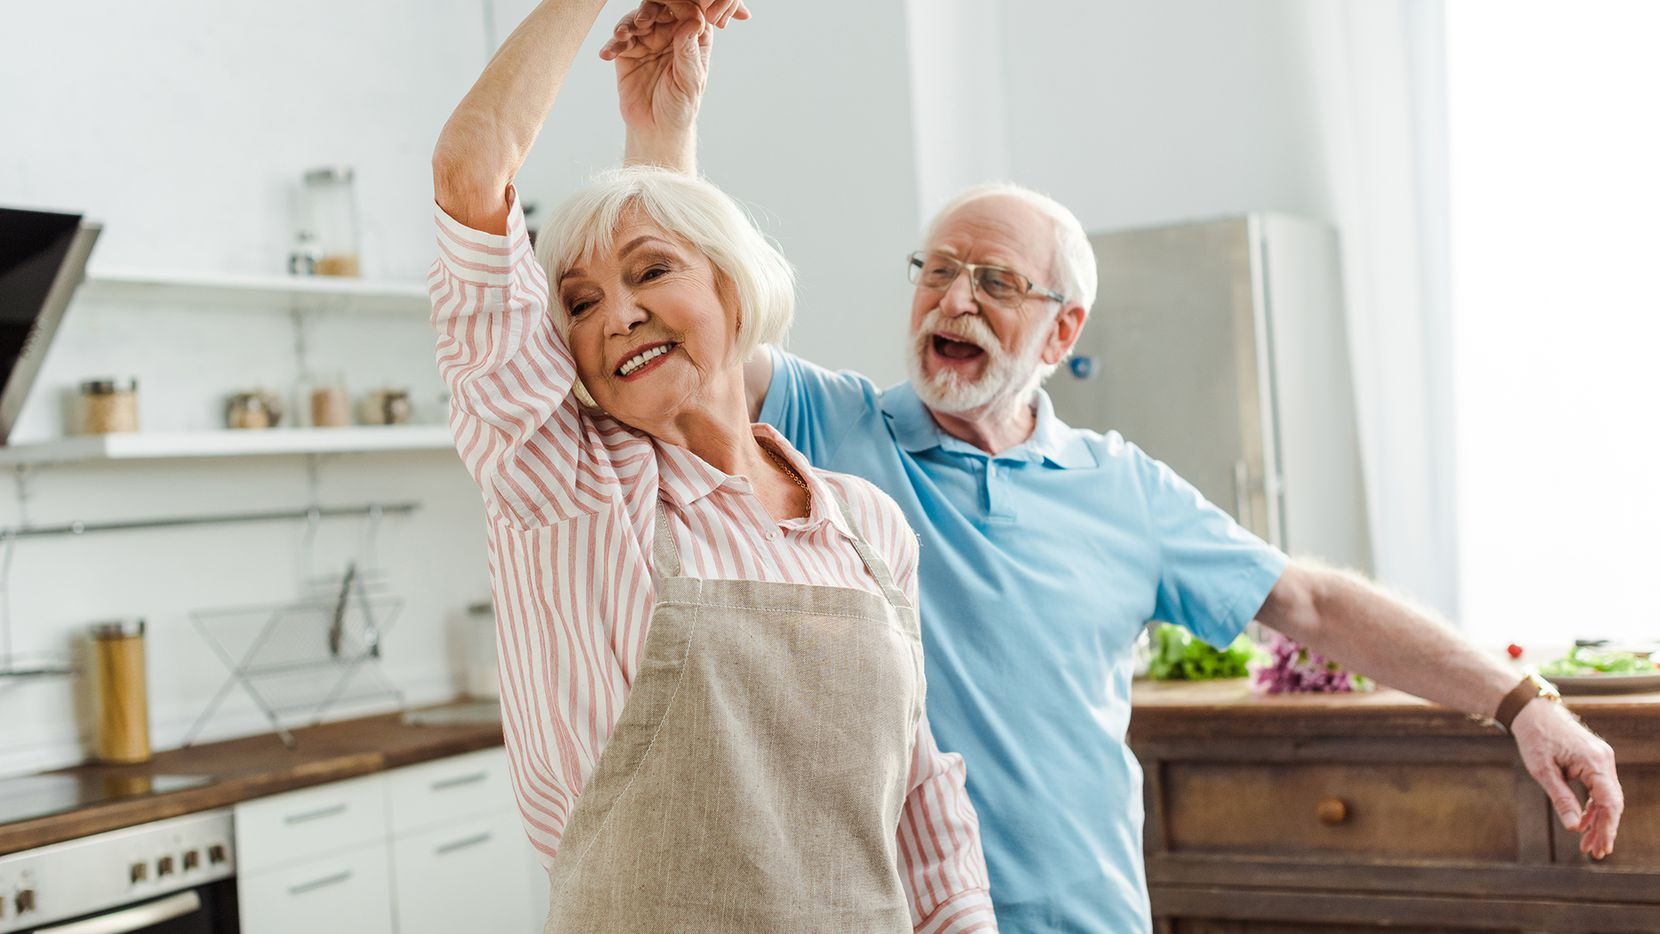 Federal government employees were initially not covered by Social Security because they had their own pension system in place before Social Security came along.